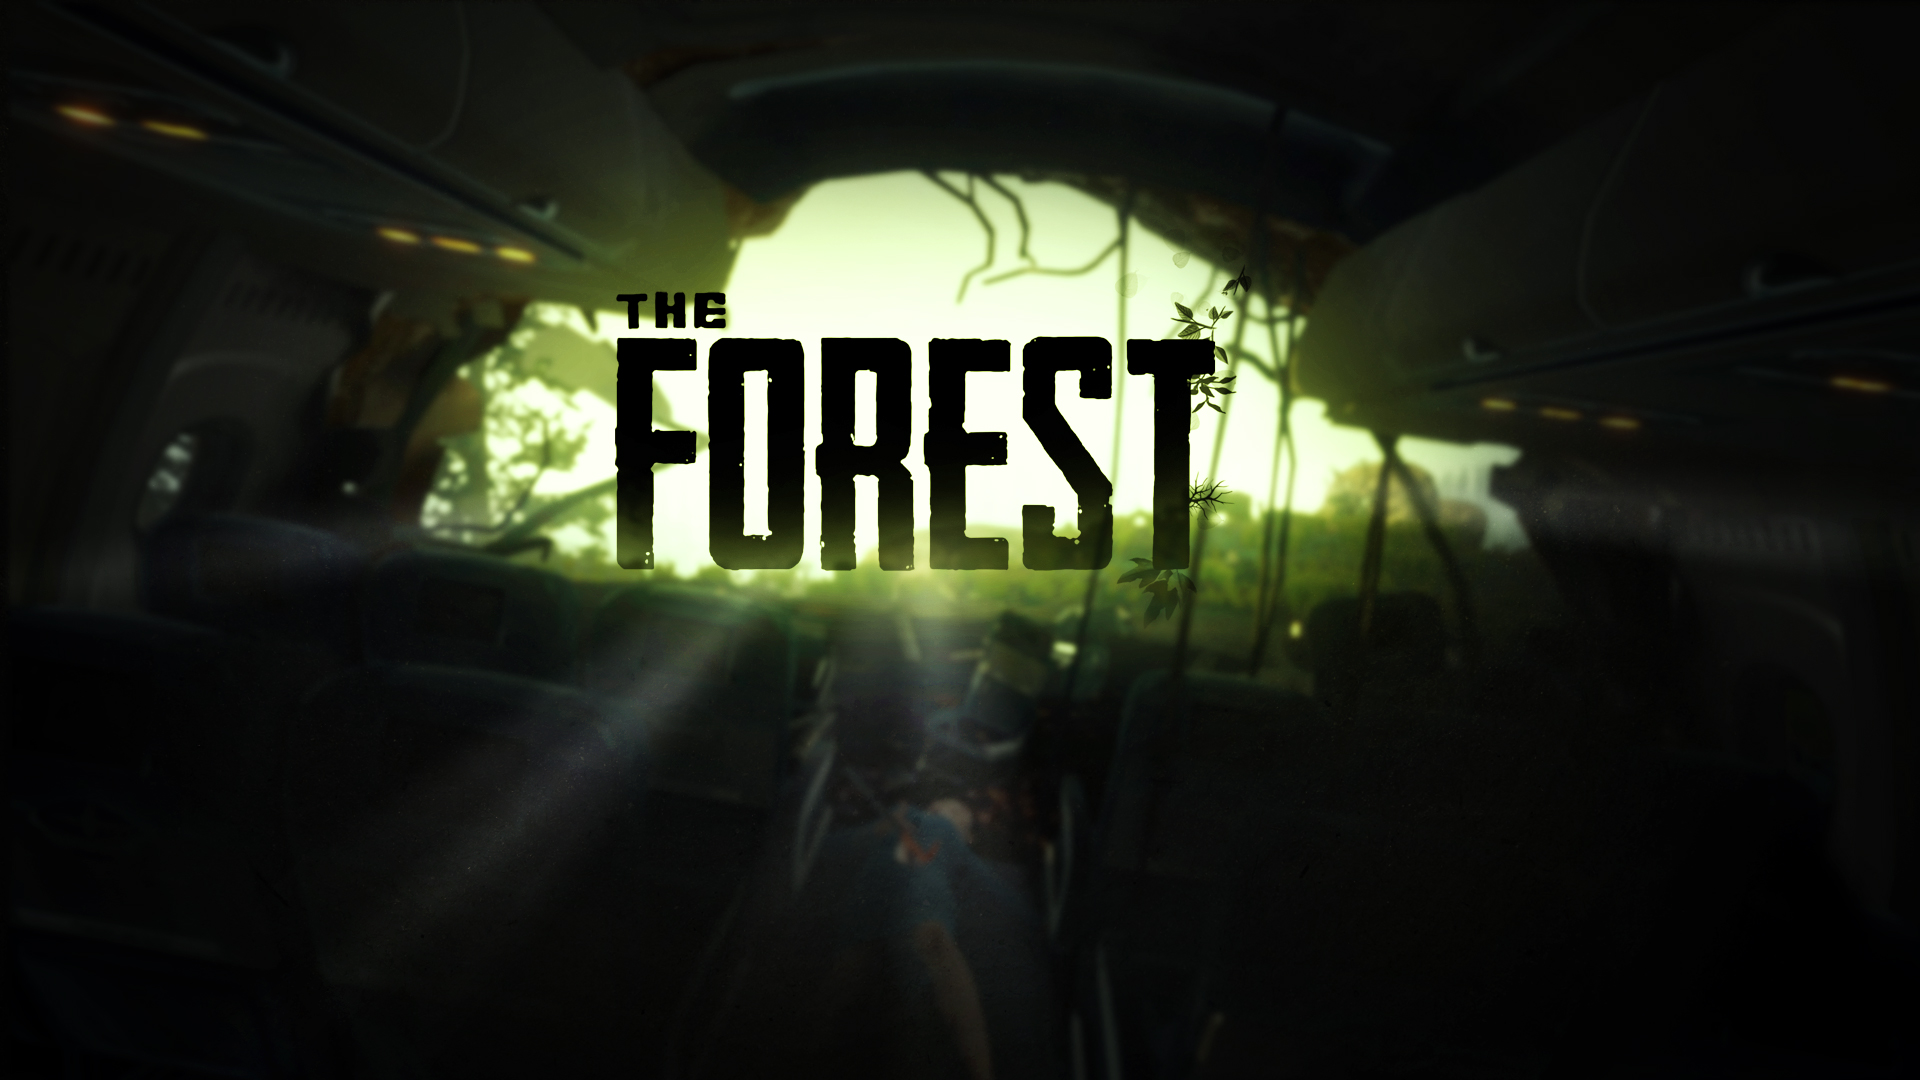 https://xgm.guru/p/aboutgames/the-forest-qmbs